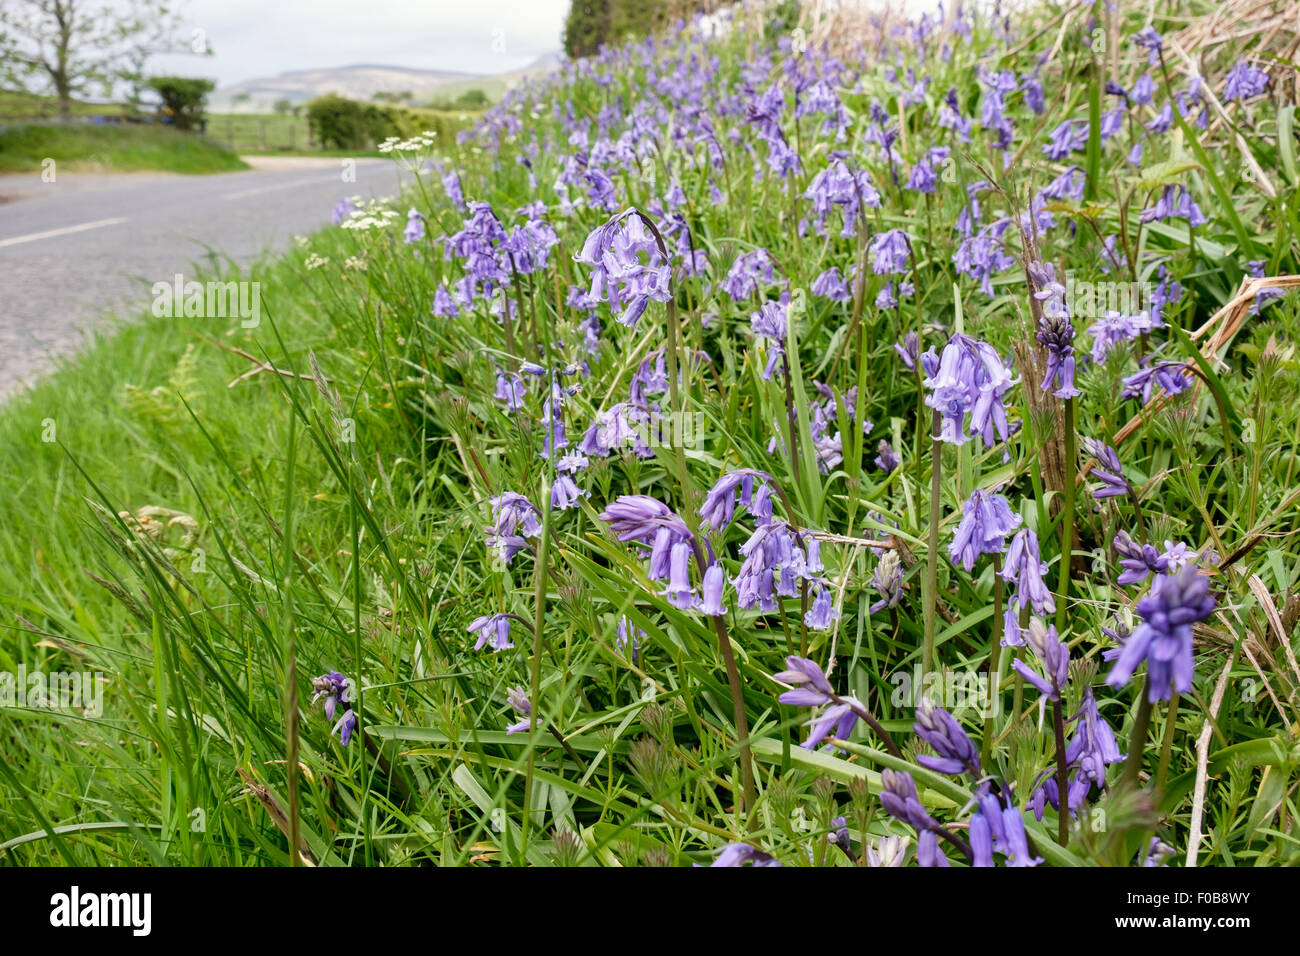 Roadside grass verge hedgerow with Bluebells wild flowers growing beside a country road in spring / summer. Scotland, - Stock Image